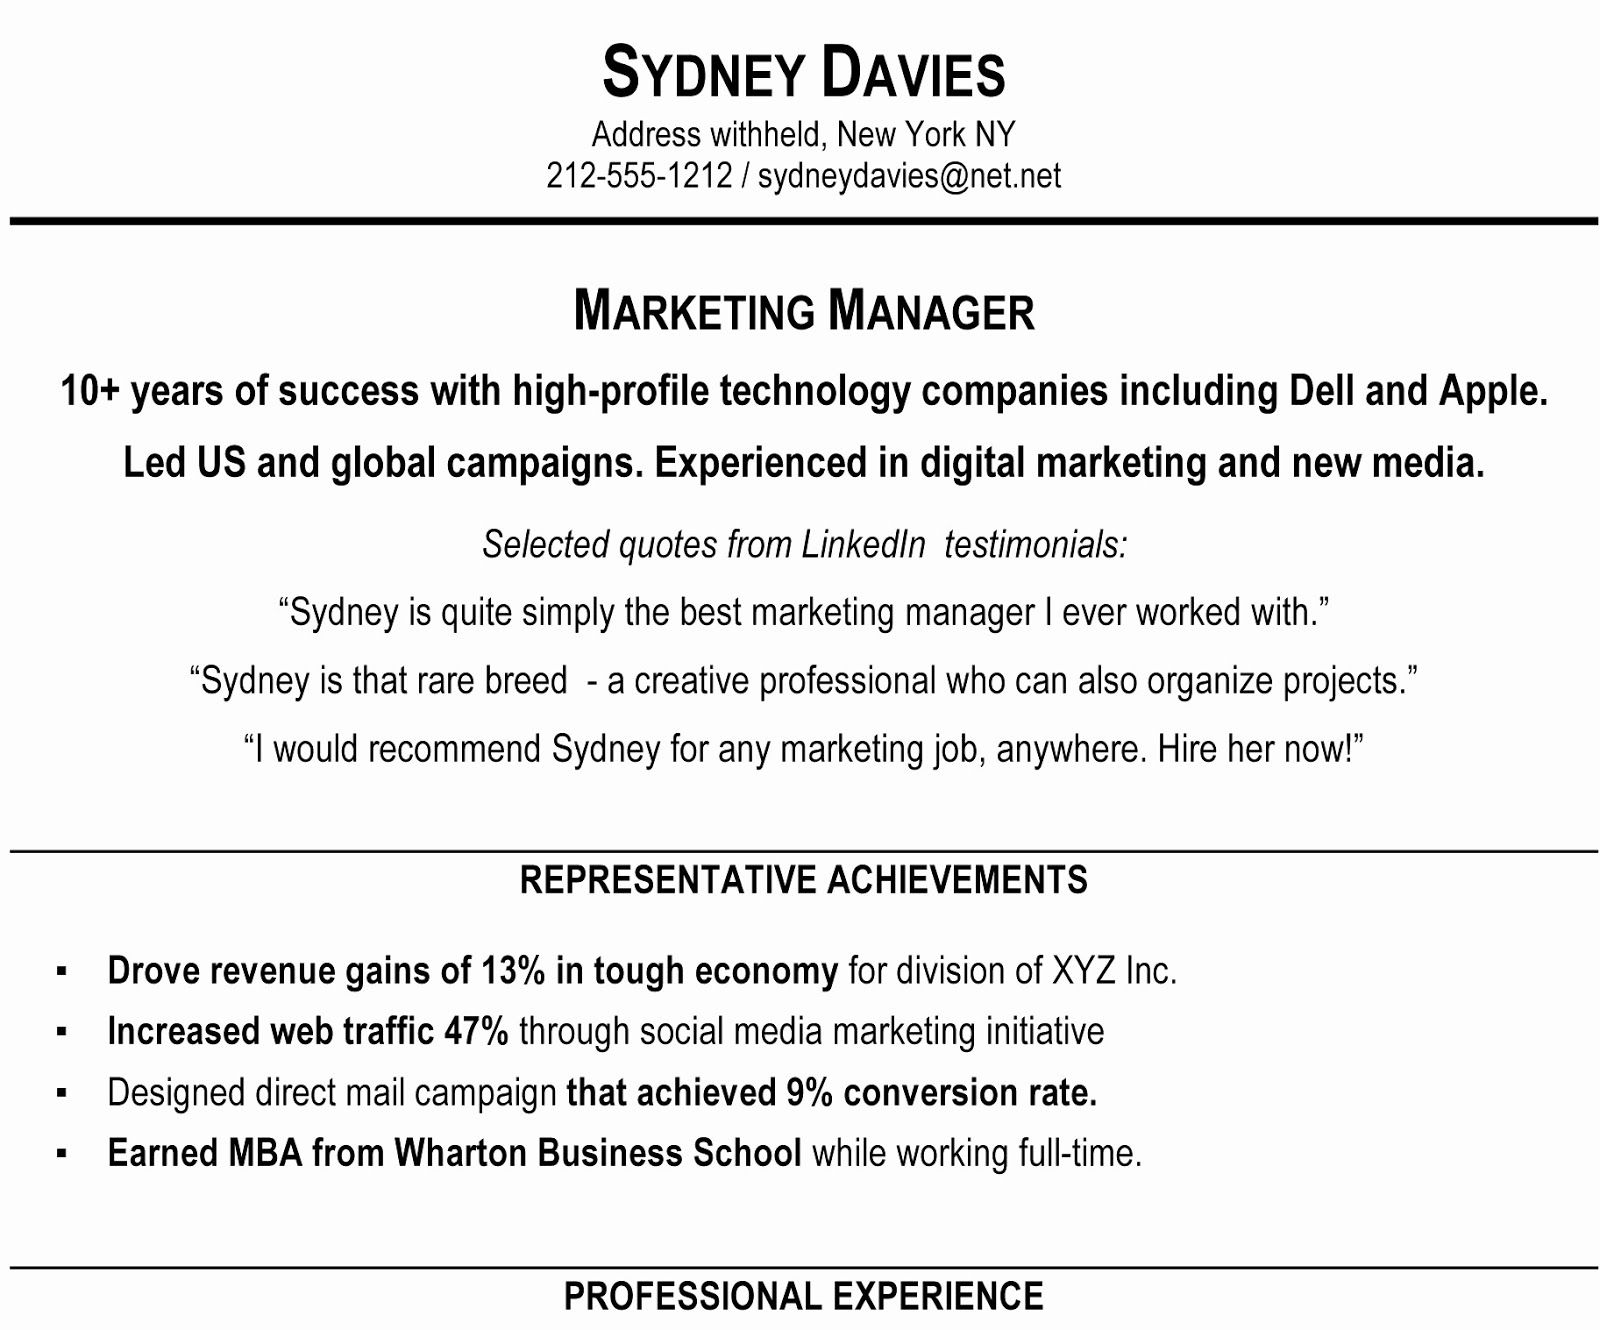 Marketing Assistant Resume Example Assistant Marketing Manager Resume Examples 2019 Marketing Assistant Resume Summary Examples Resume Profile Resume Summary